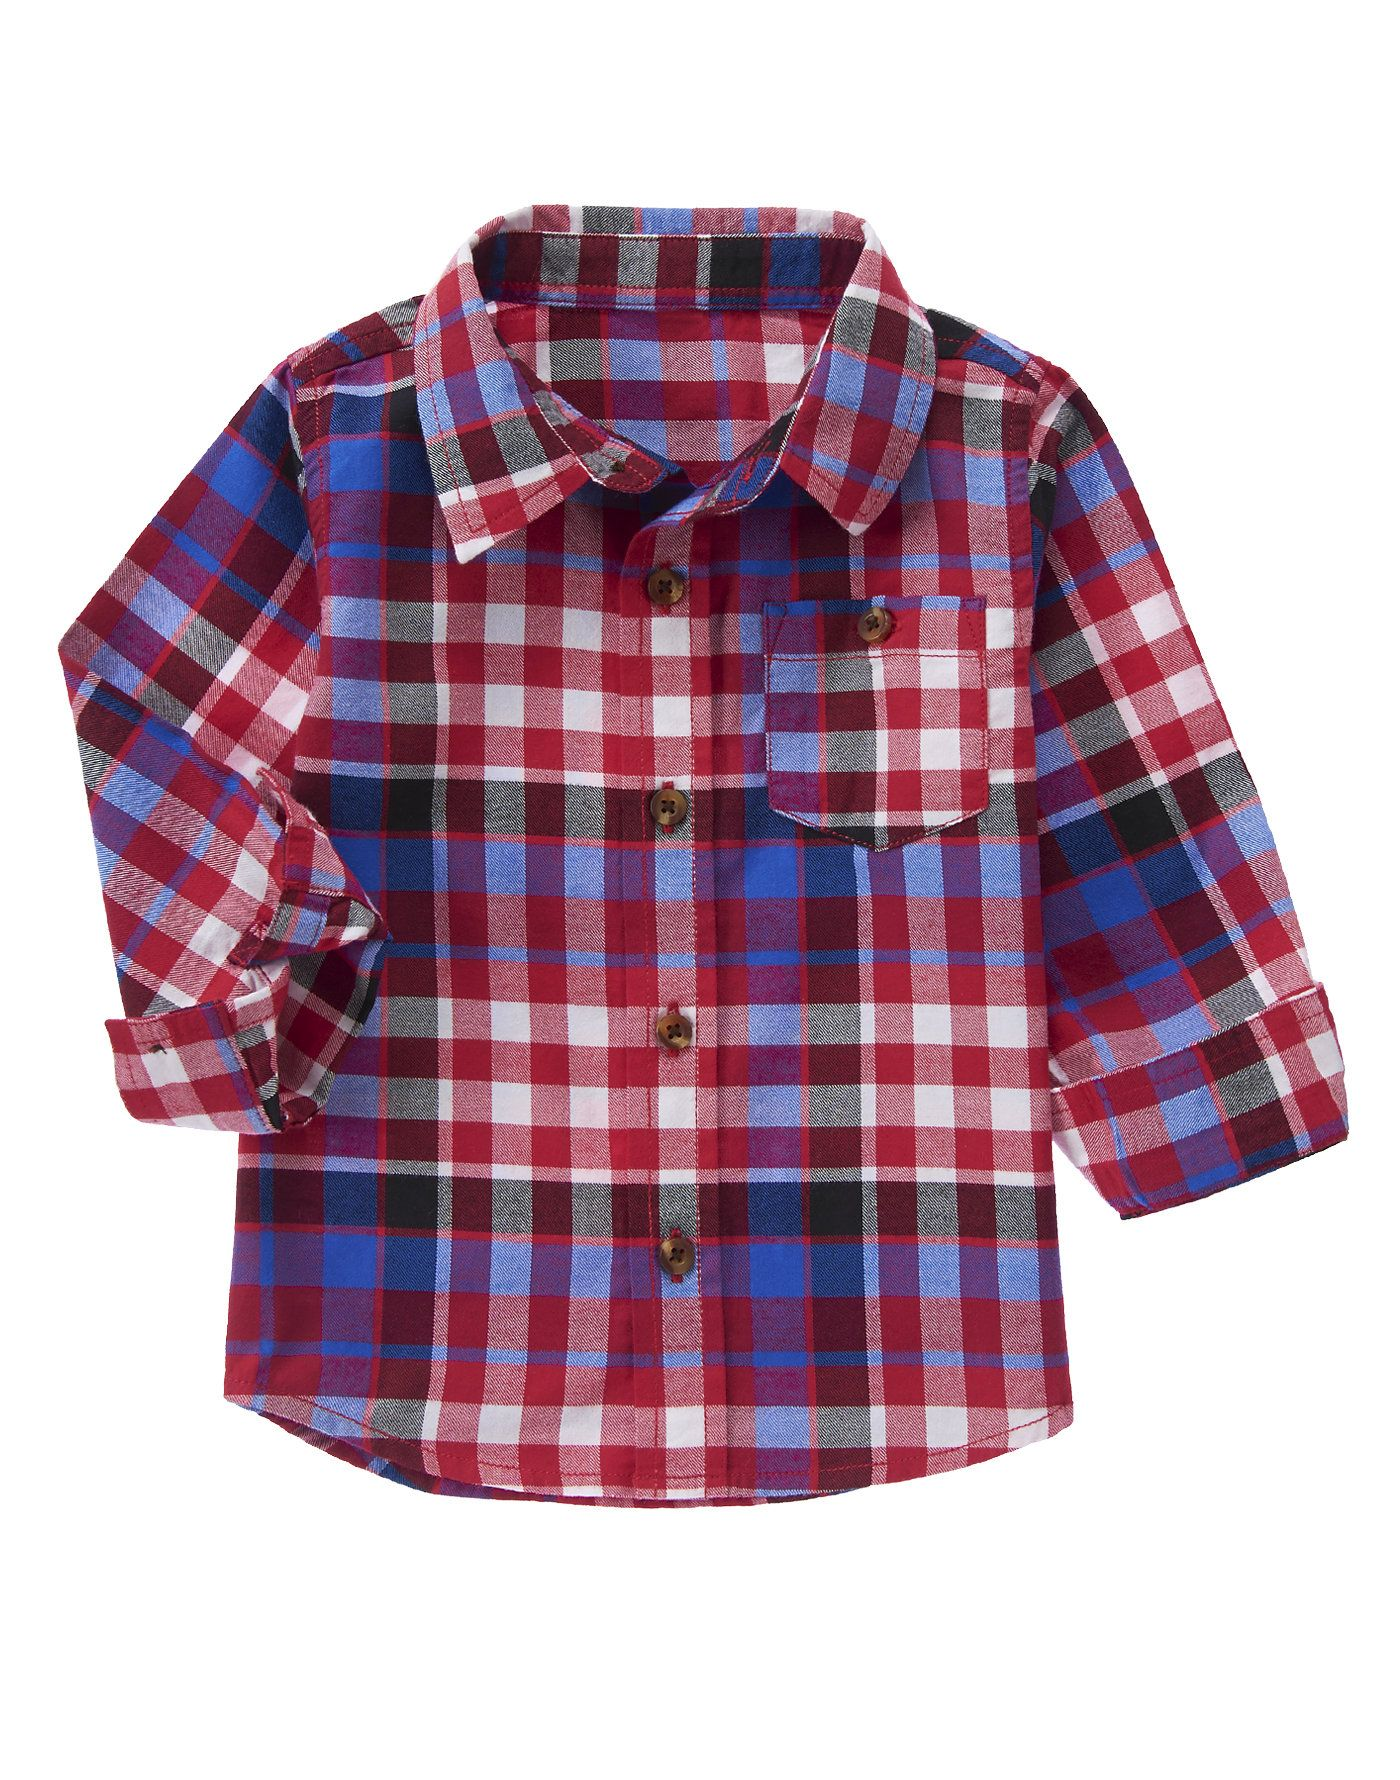 Flannel shirt for baby boy  Plaid shirt  Toddler boys and Kids clothing